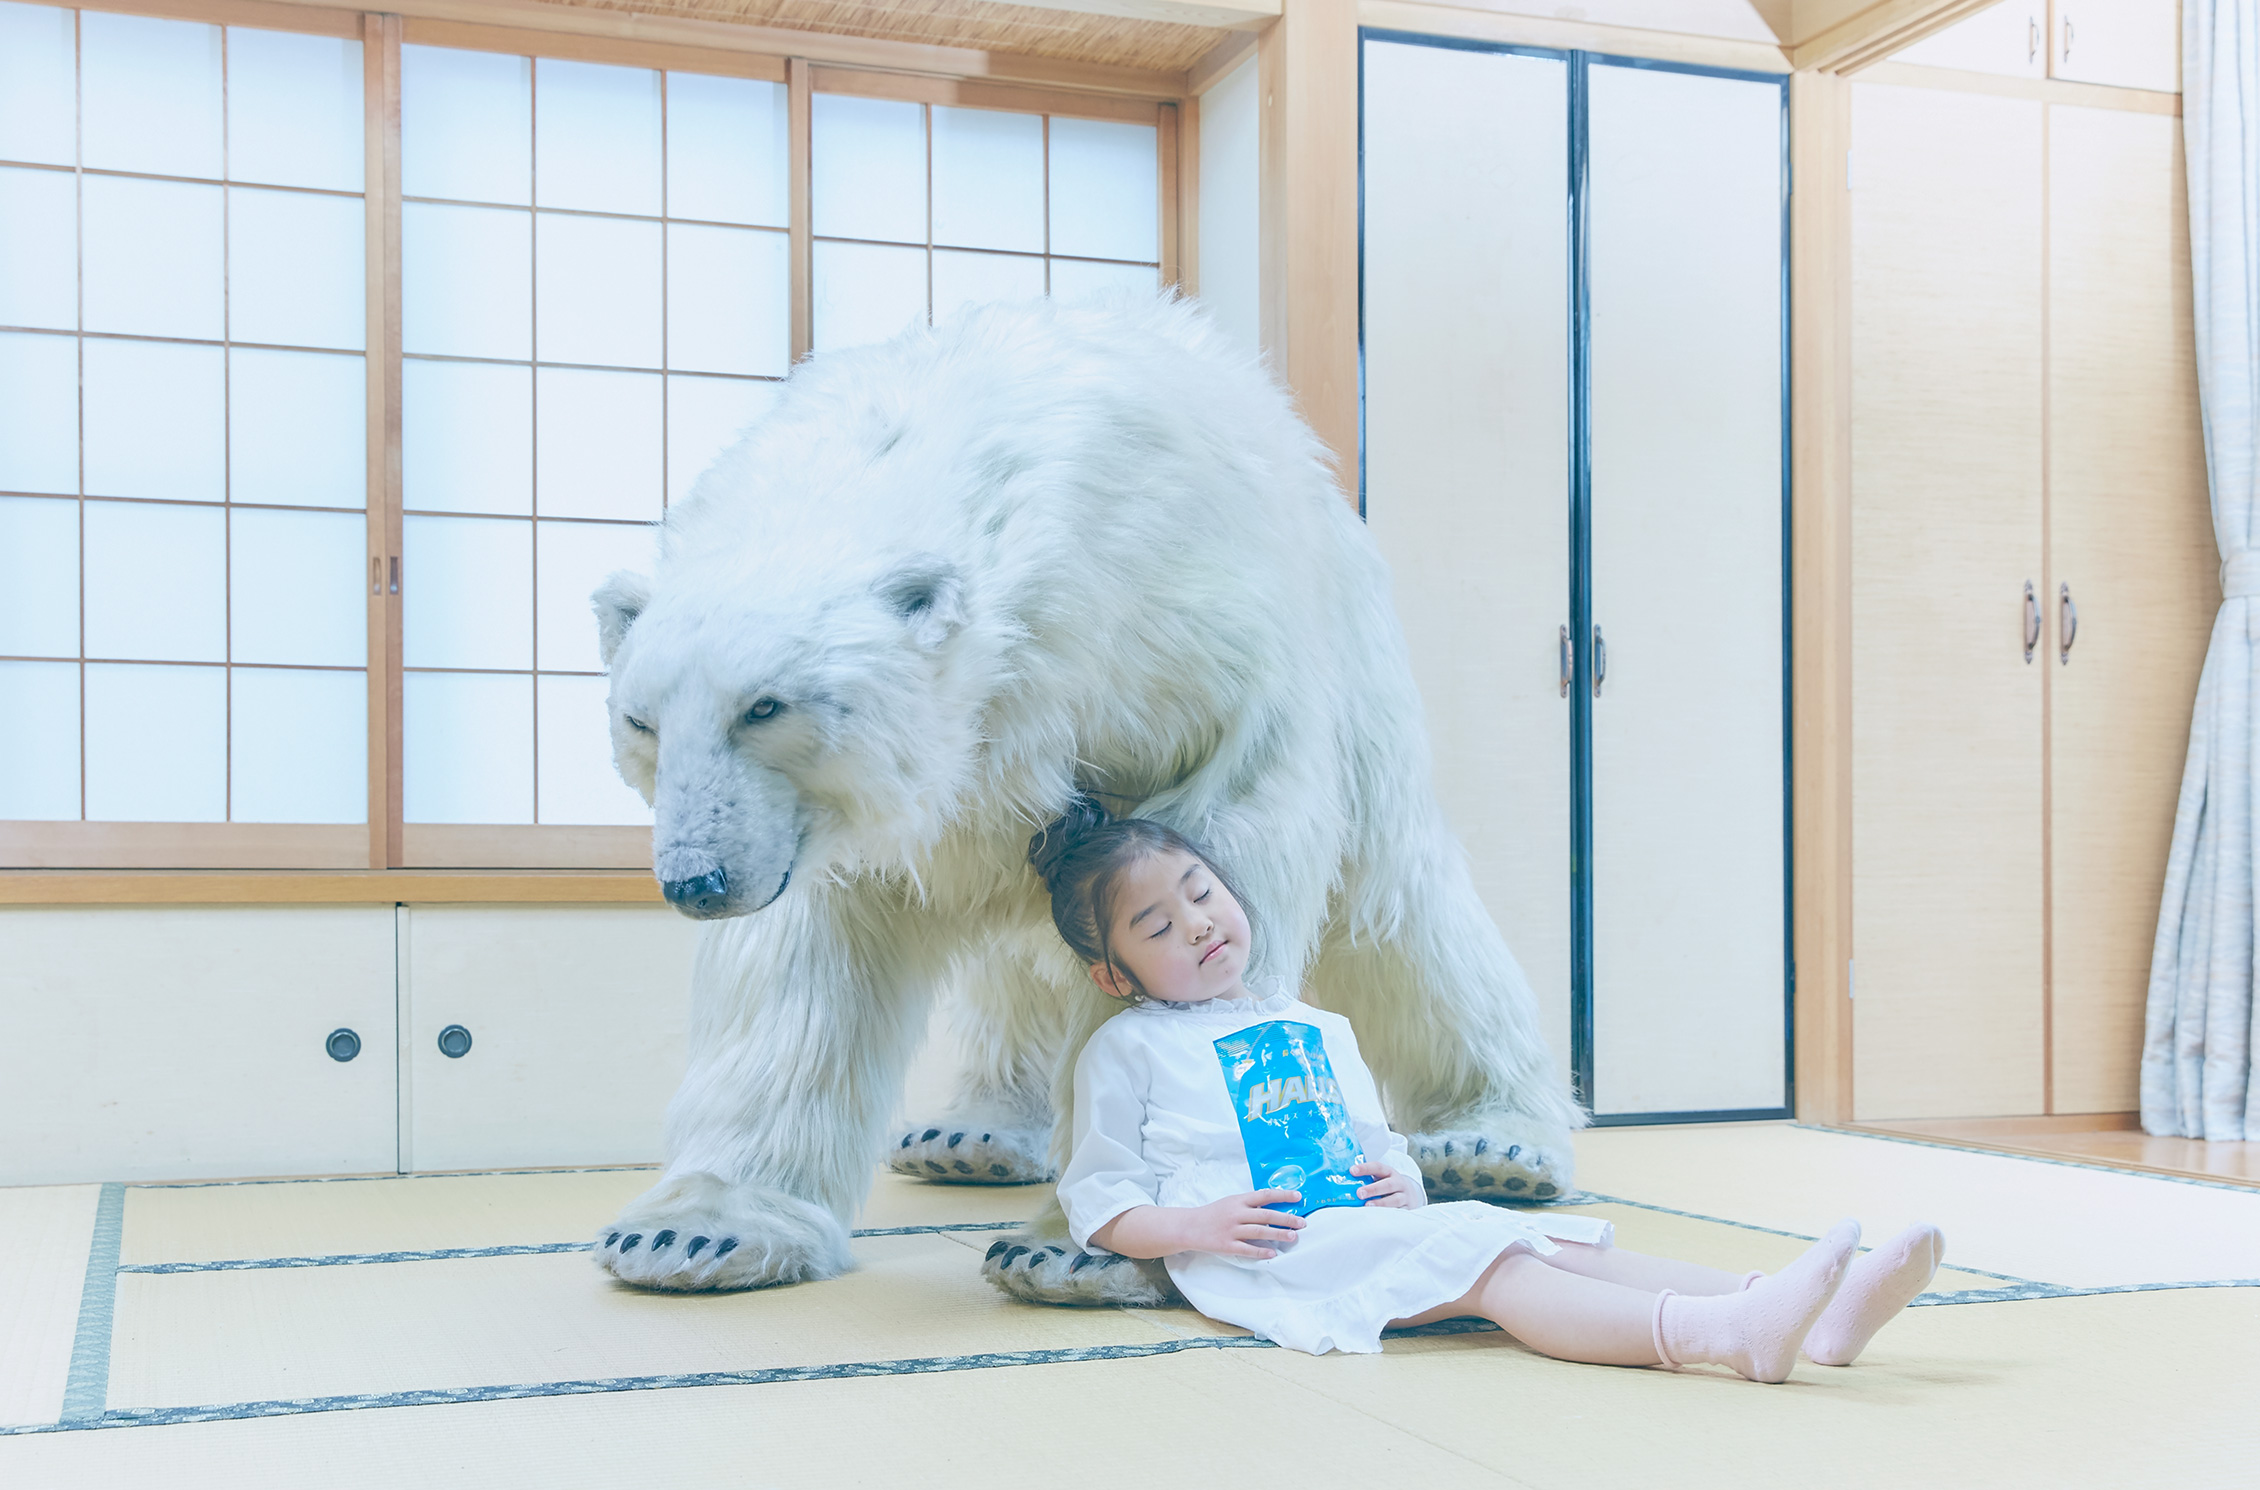 halls delivery bear service polar white animal campaign